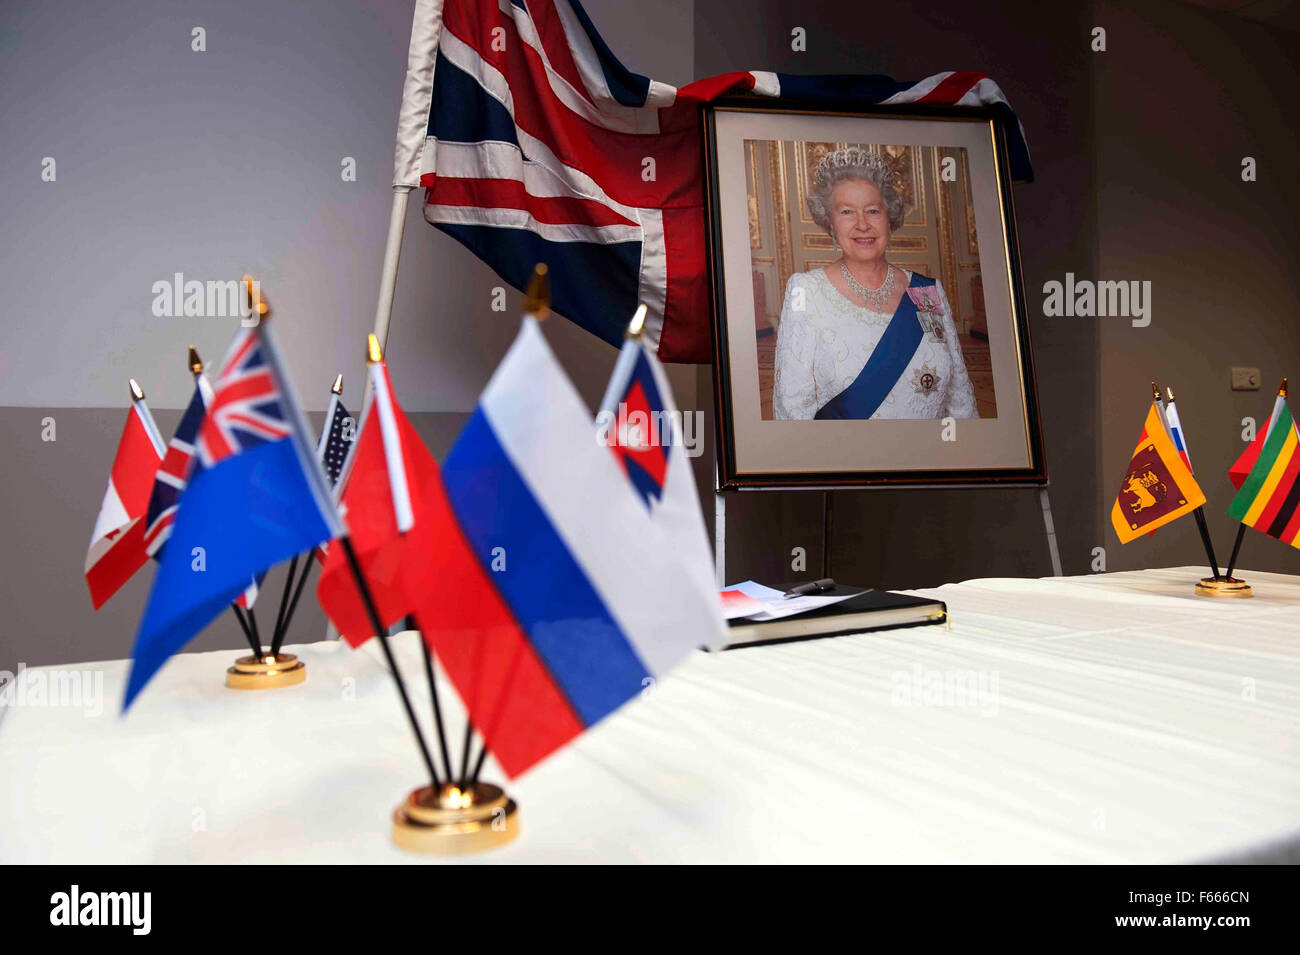 A portrait of the Queen of England on a table adorned with the Union Jack and Common Wealth flags during a Citizenship - Stock Image